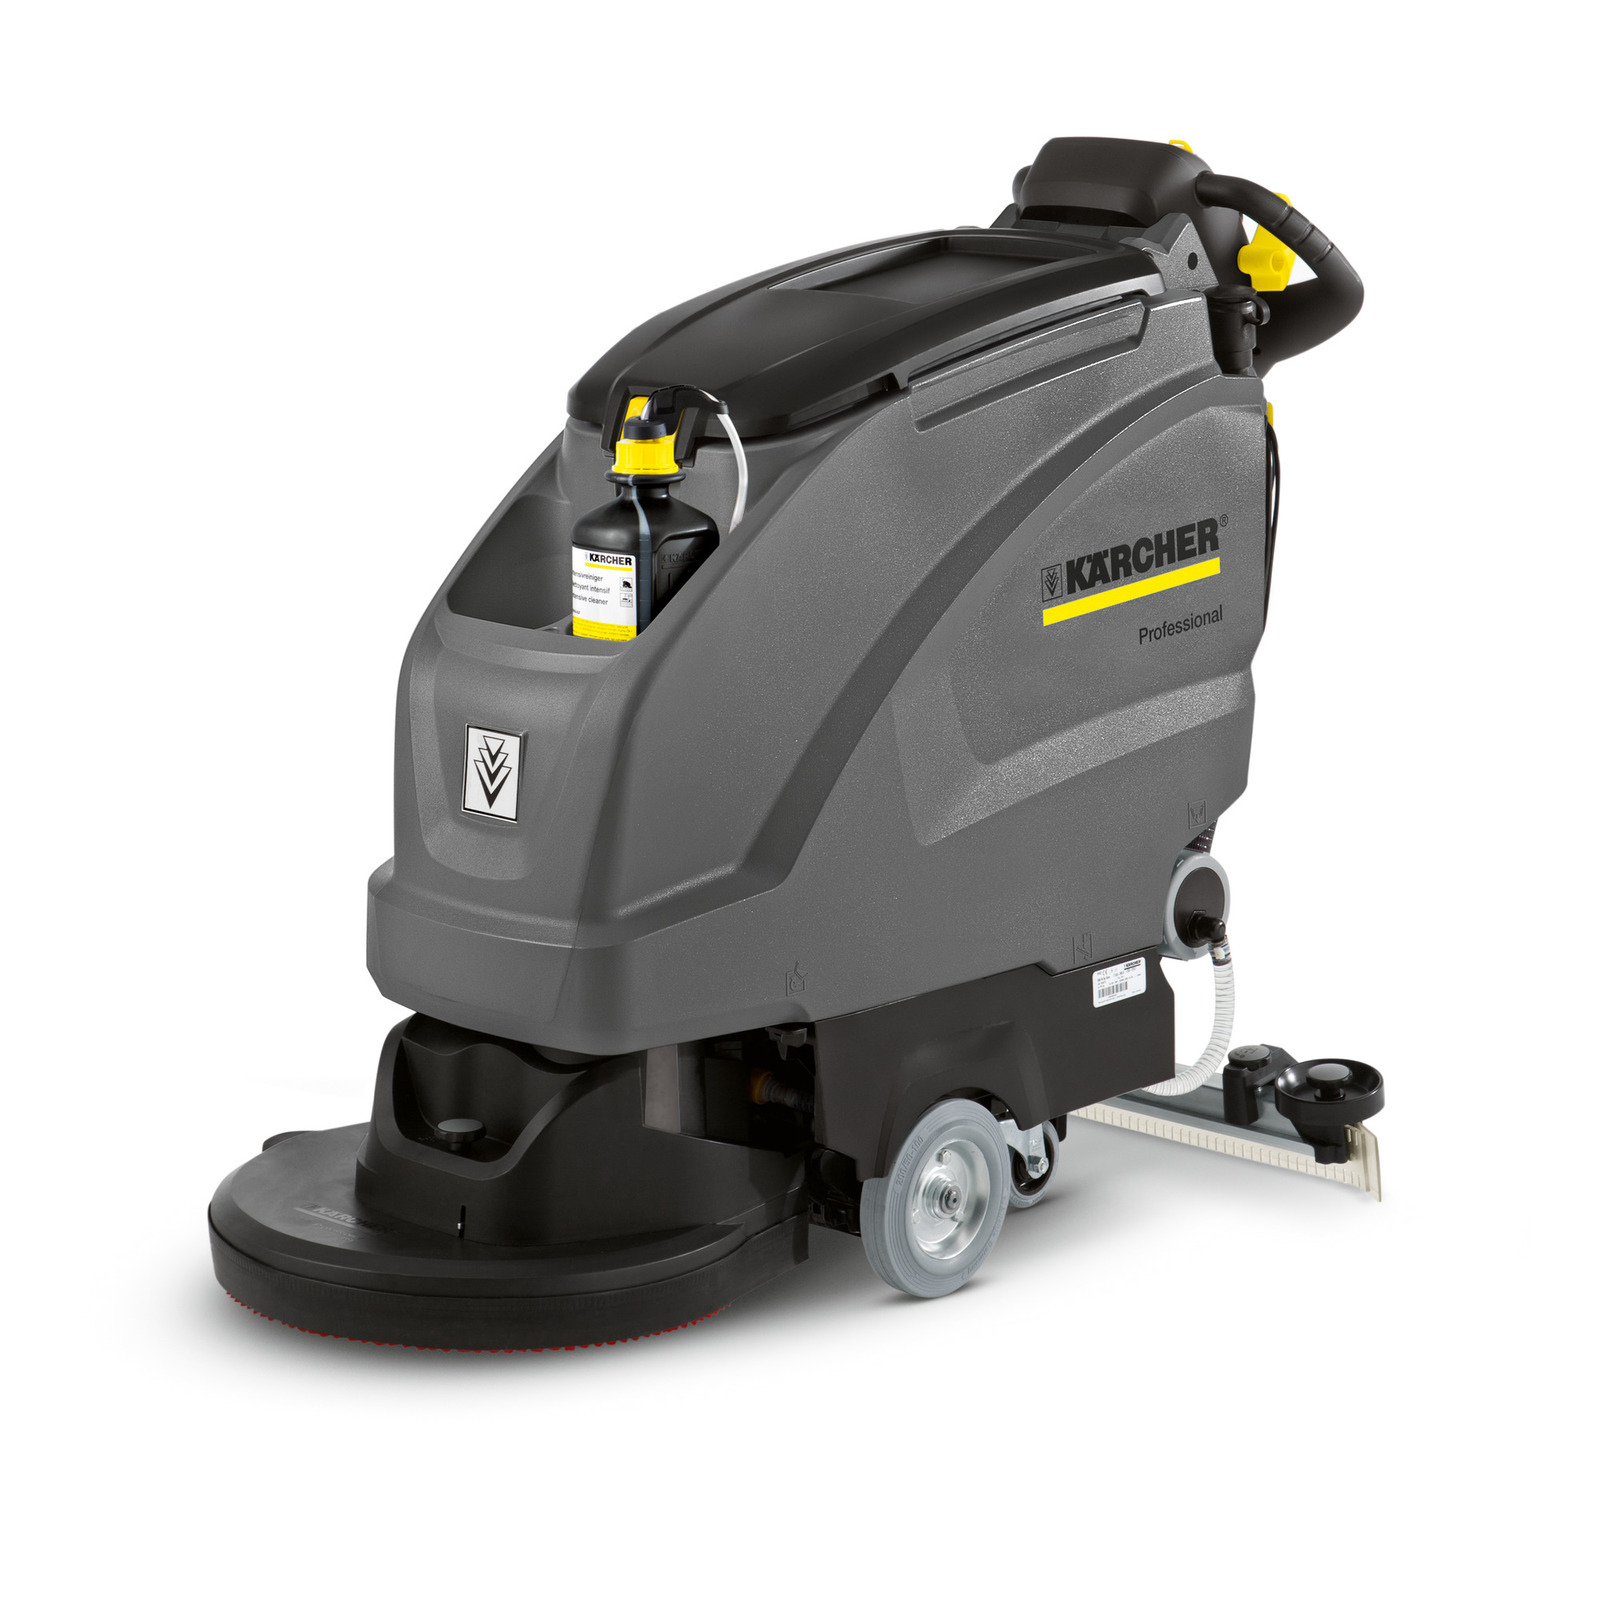 Karcher B 40 C Bp Traction Drive Auto Scrubber 24v 138 Ah AGM Batteries D51 Disk Scrub Deck 9.841-375.0 Freight Included